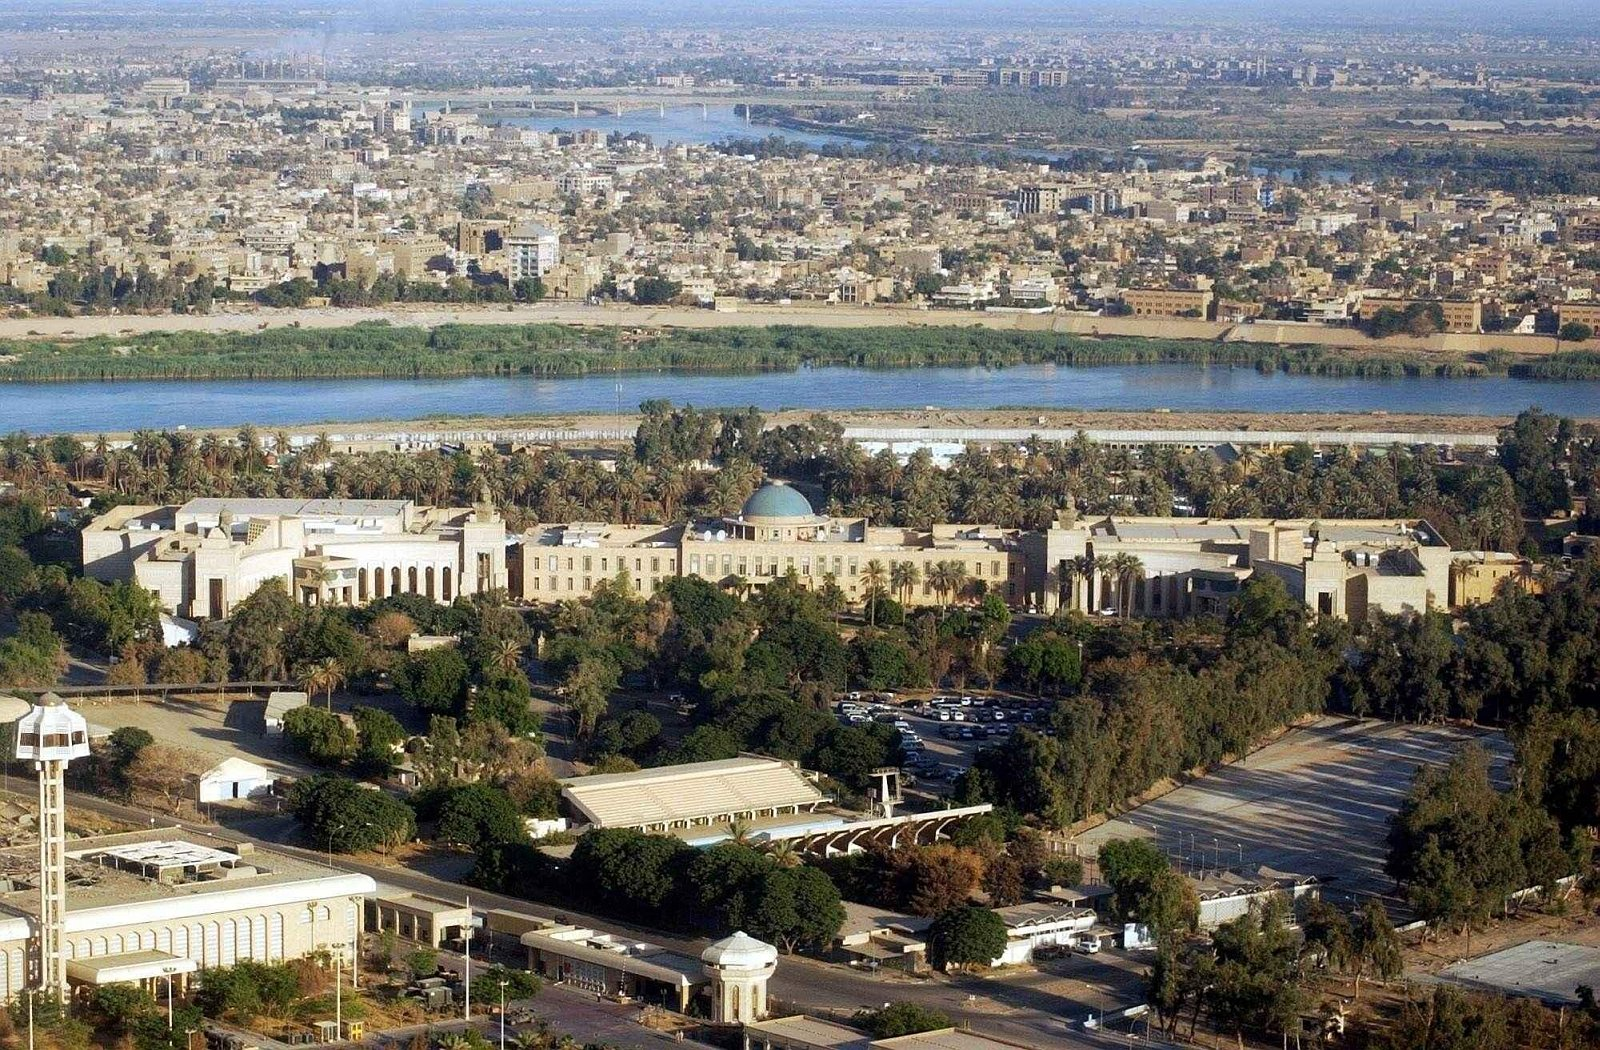 Iraq's October Surprise: 600 New Elementary & Secondary ...